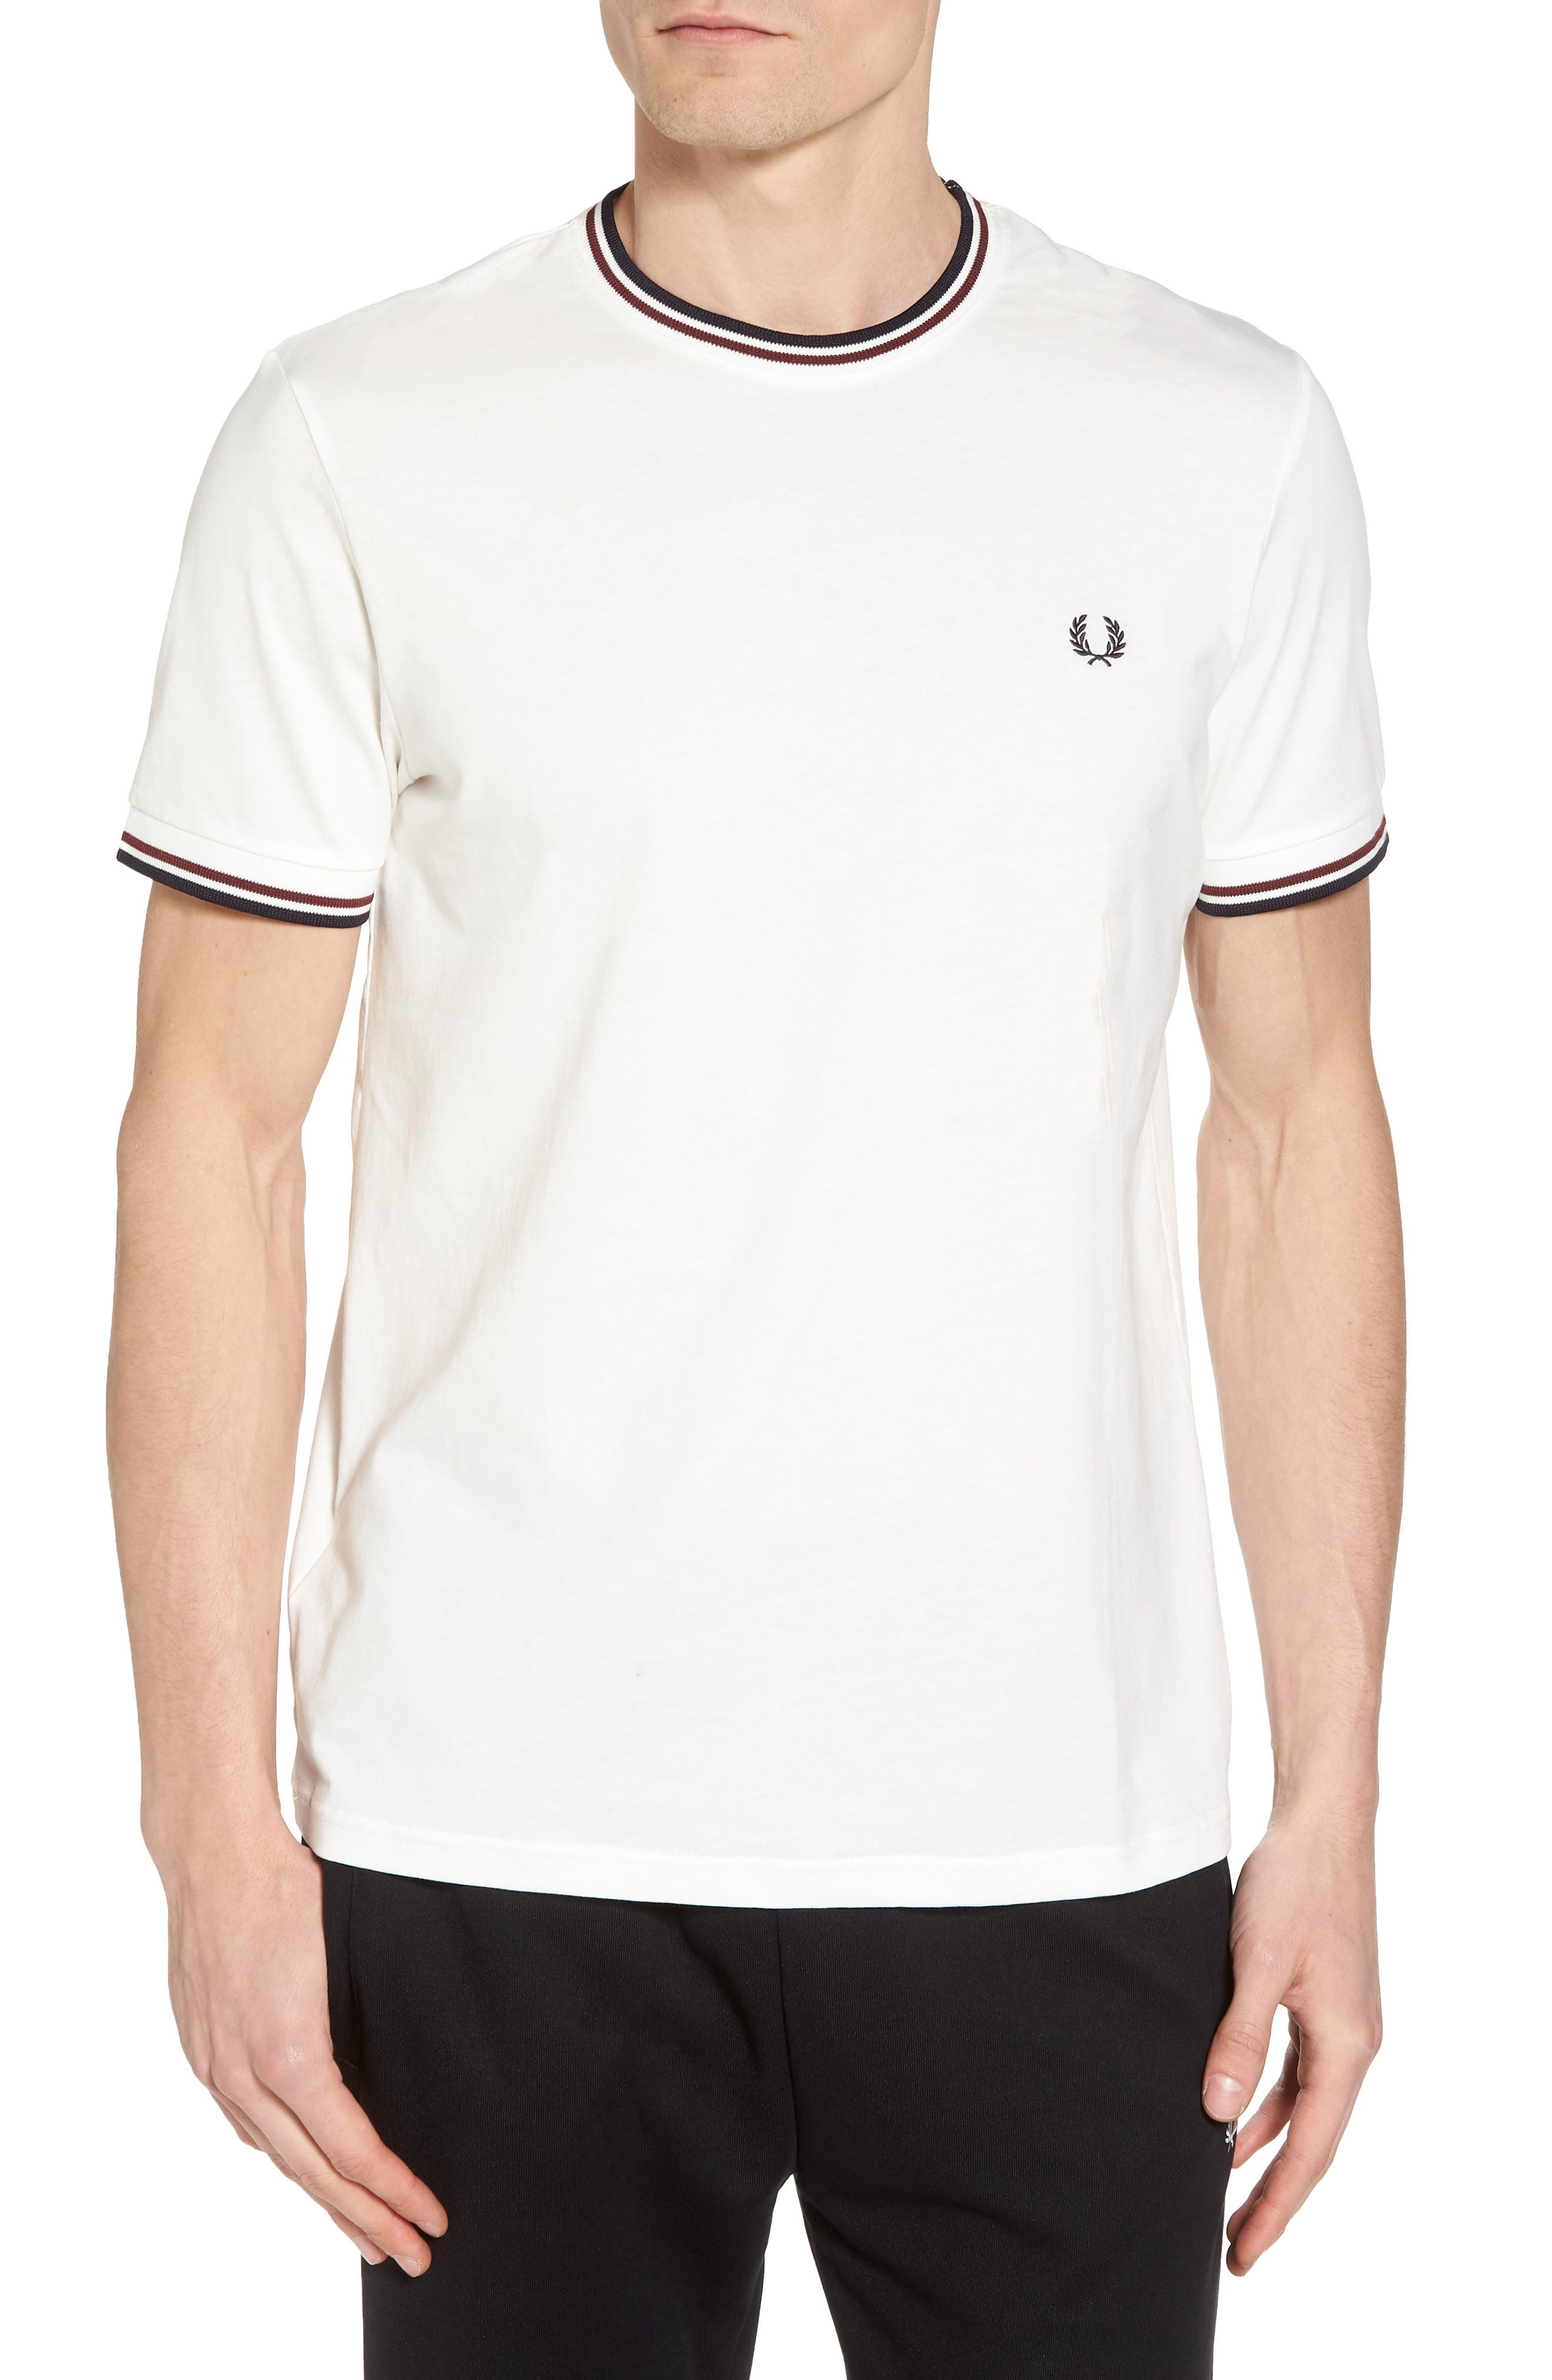 FRED PERRY,                             Tipped T-Shirt,                             Main thumbnail 1, color,                             100